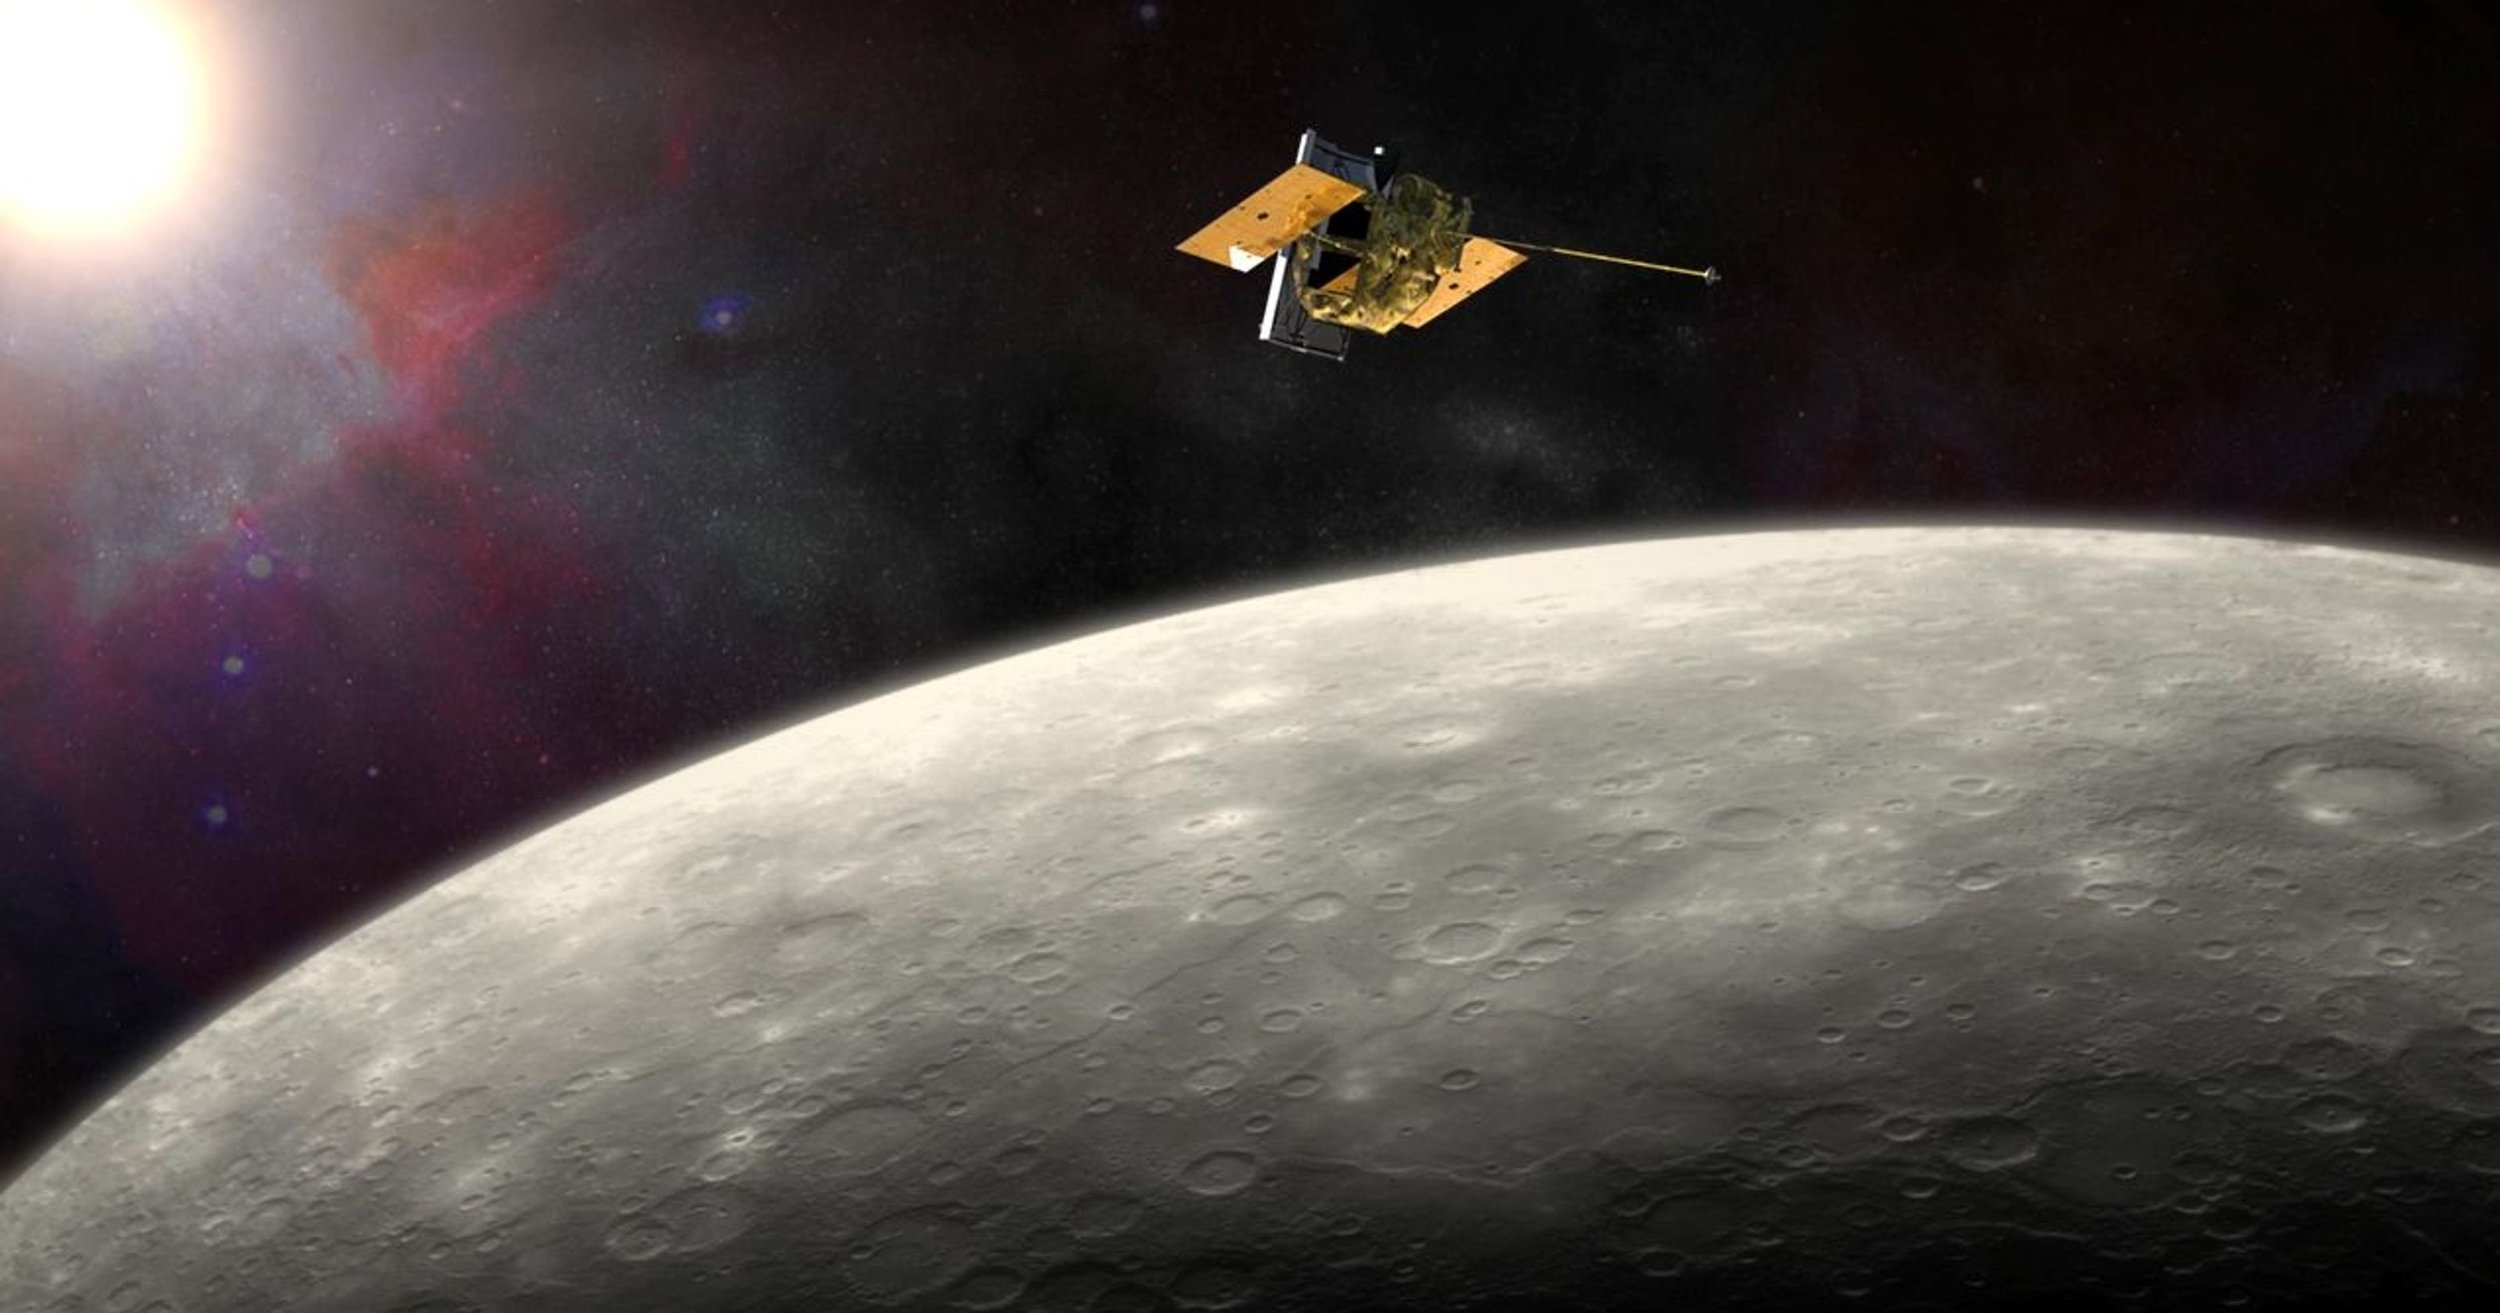 An artist's impression of NASA's  MESSENGER  spacecraft orbiting Mercury.  MESSENGER  was an incredibly successful Discovery-class mission (which means it was relatively low cost by NASA standards) that I worked on before leaving academia for industry. (NASA/JHU-APL/CIW)